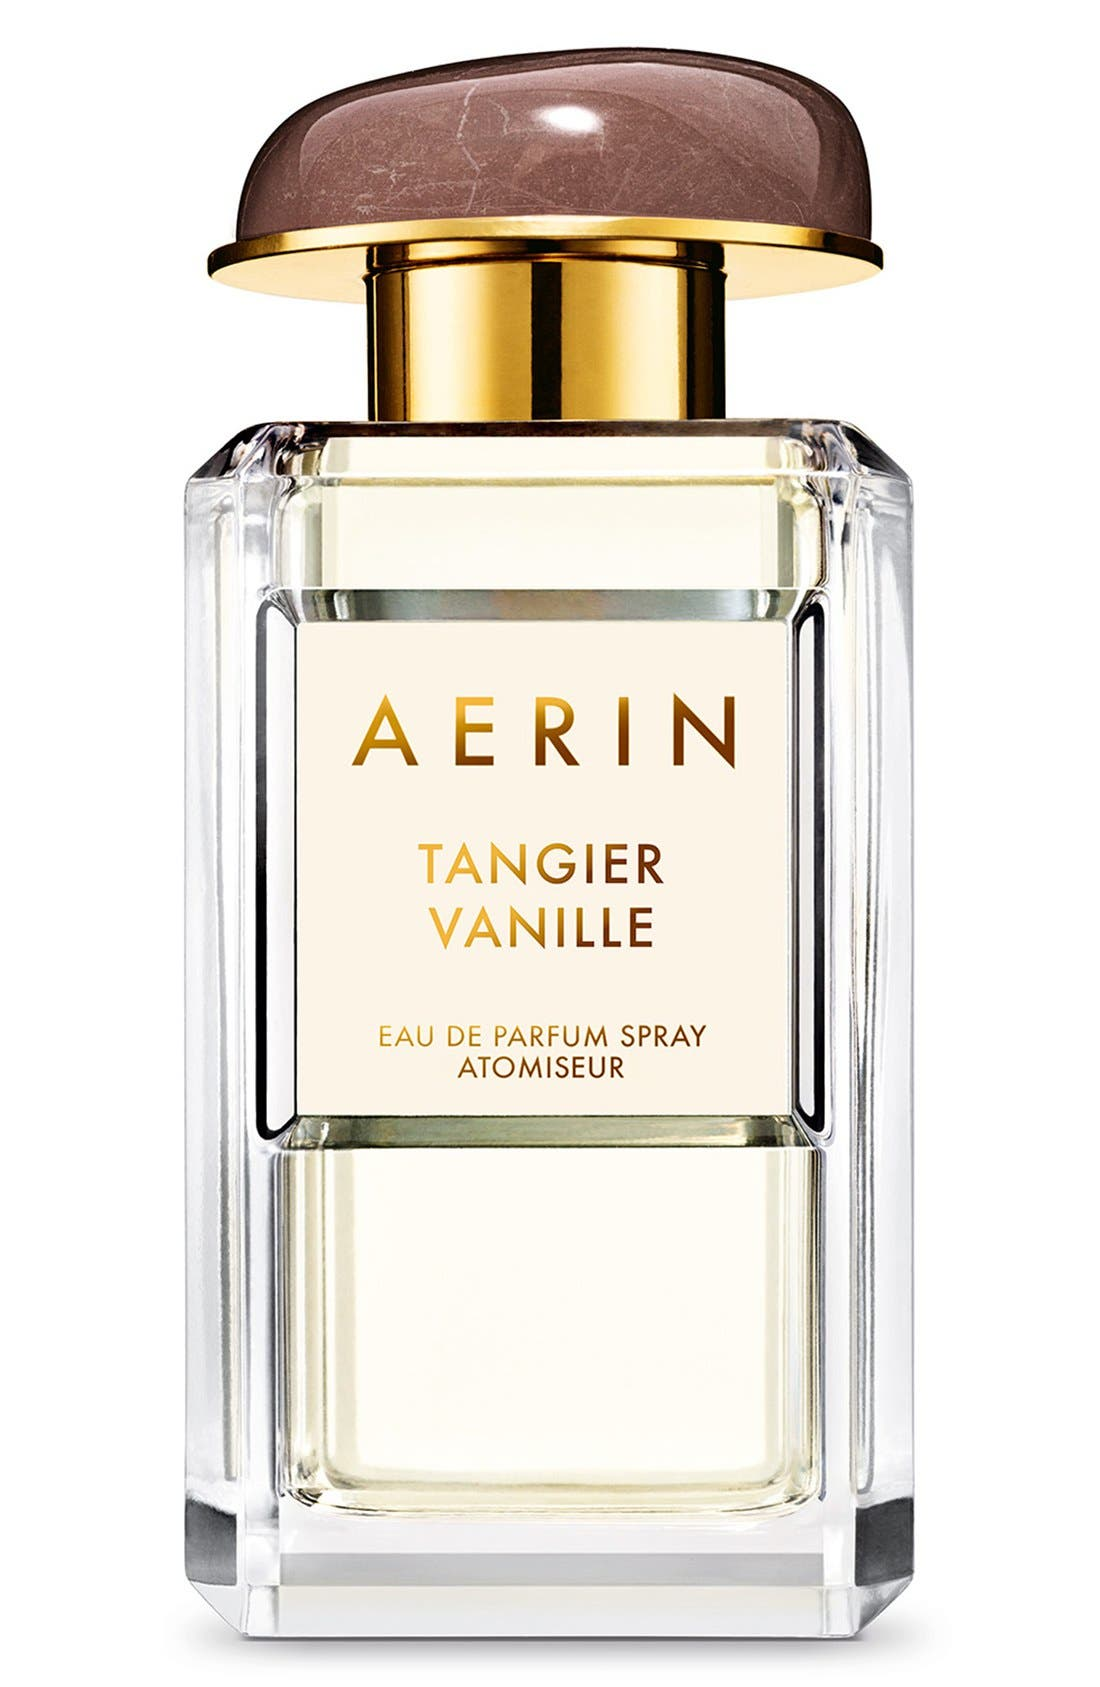 AERIN Beauty Tangier Vanille Eau de Parfum Spray